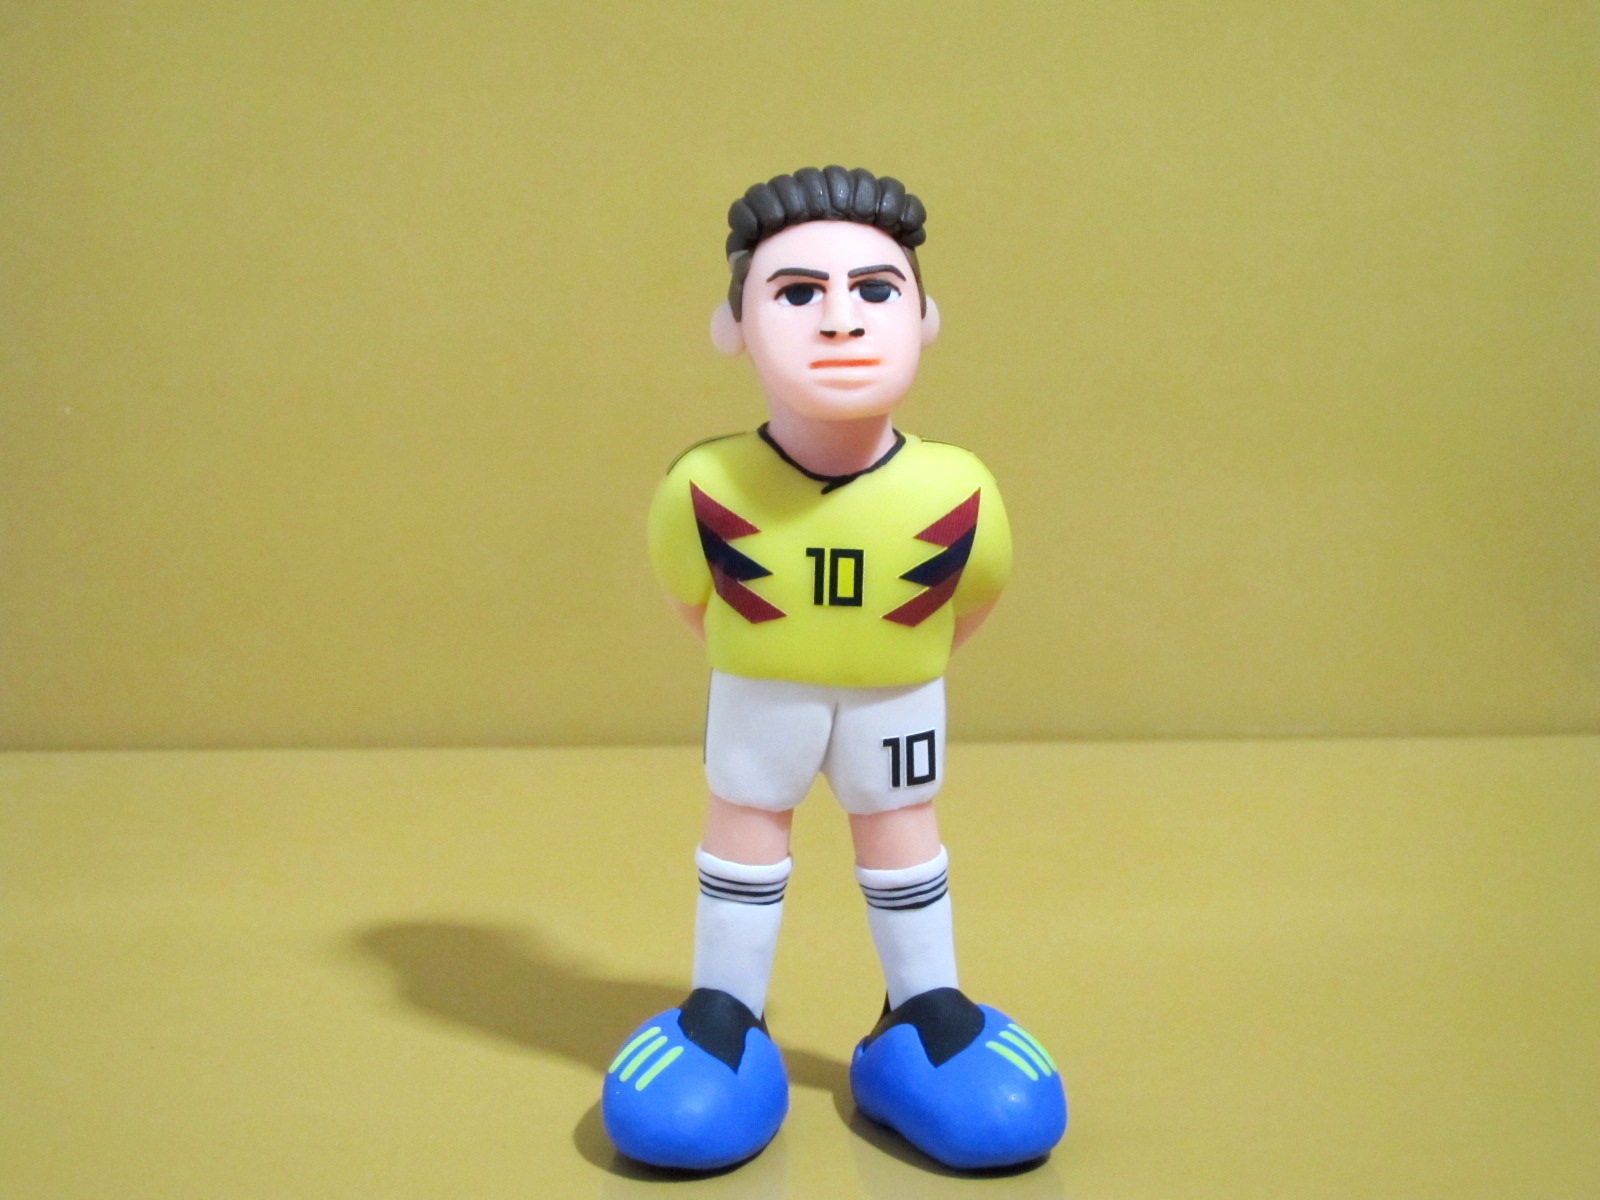 Gifts for boys fashion dolls, dolls, hand-made blind box ornaments, World Cup football star Columbia J Luo